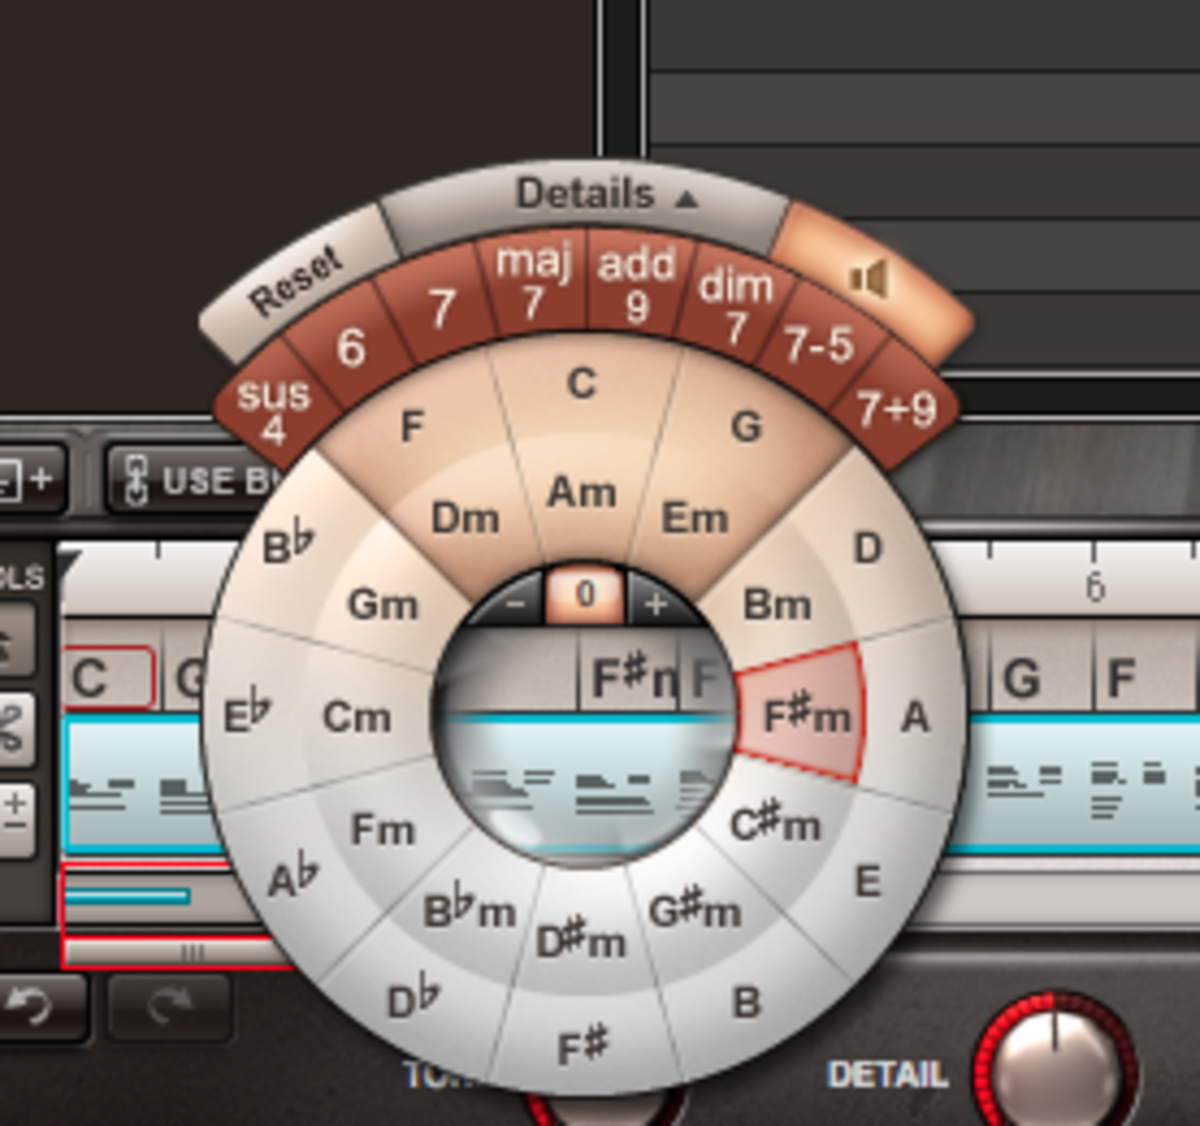 Chords can easily be changed using the sequencer